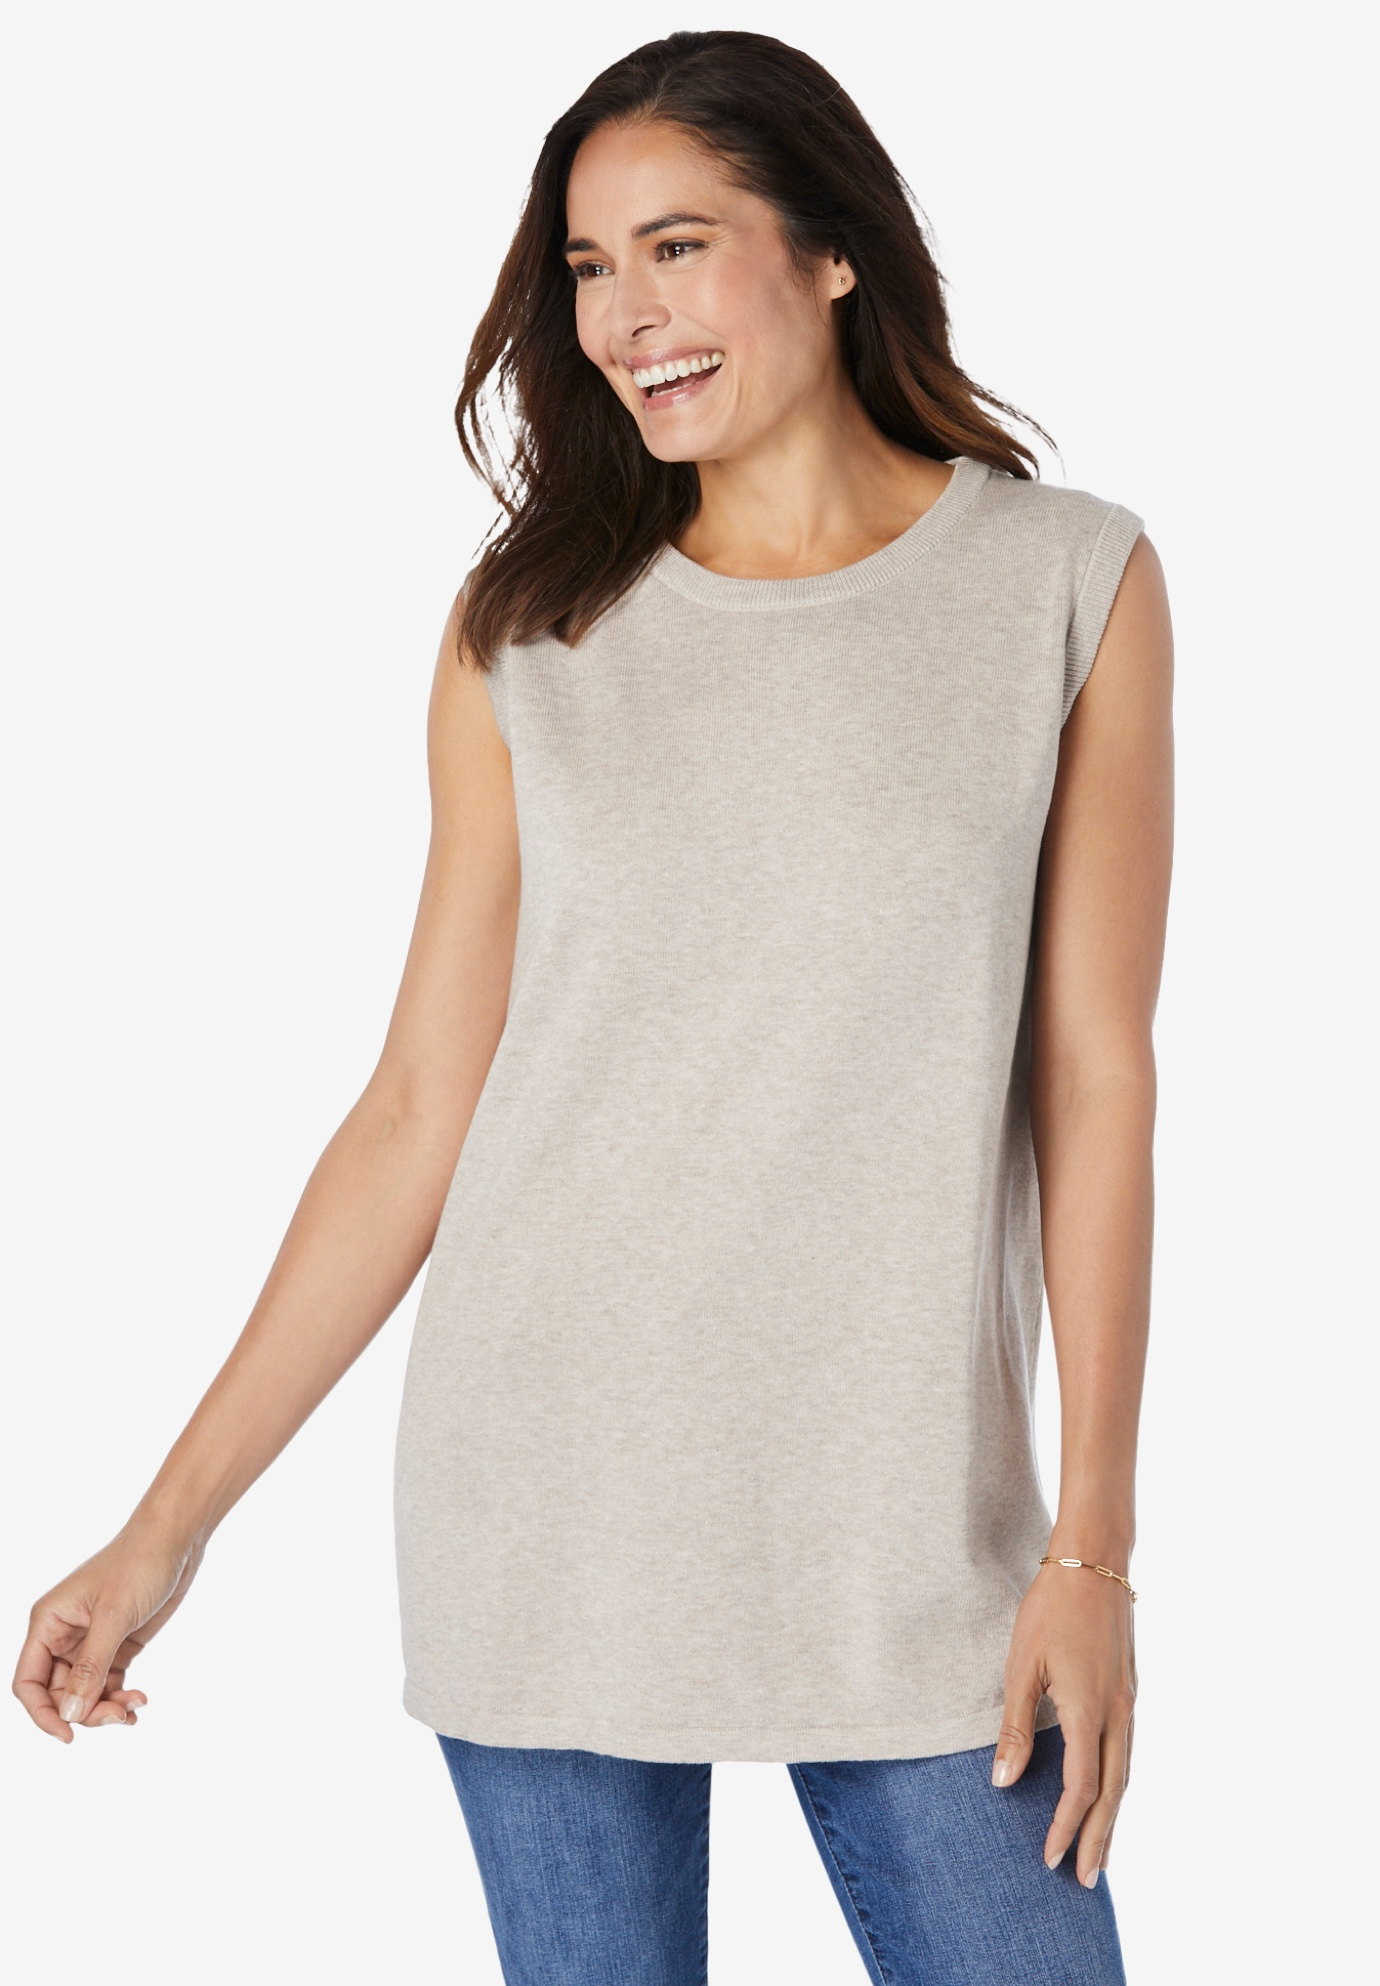 Perfect Cotton Sleeveless Crewneck,